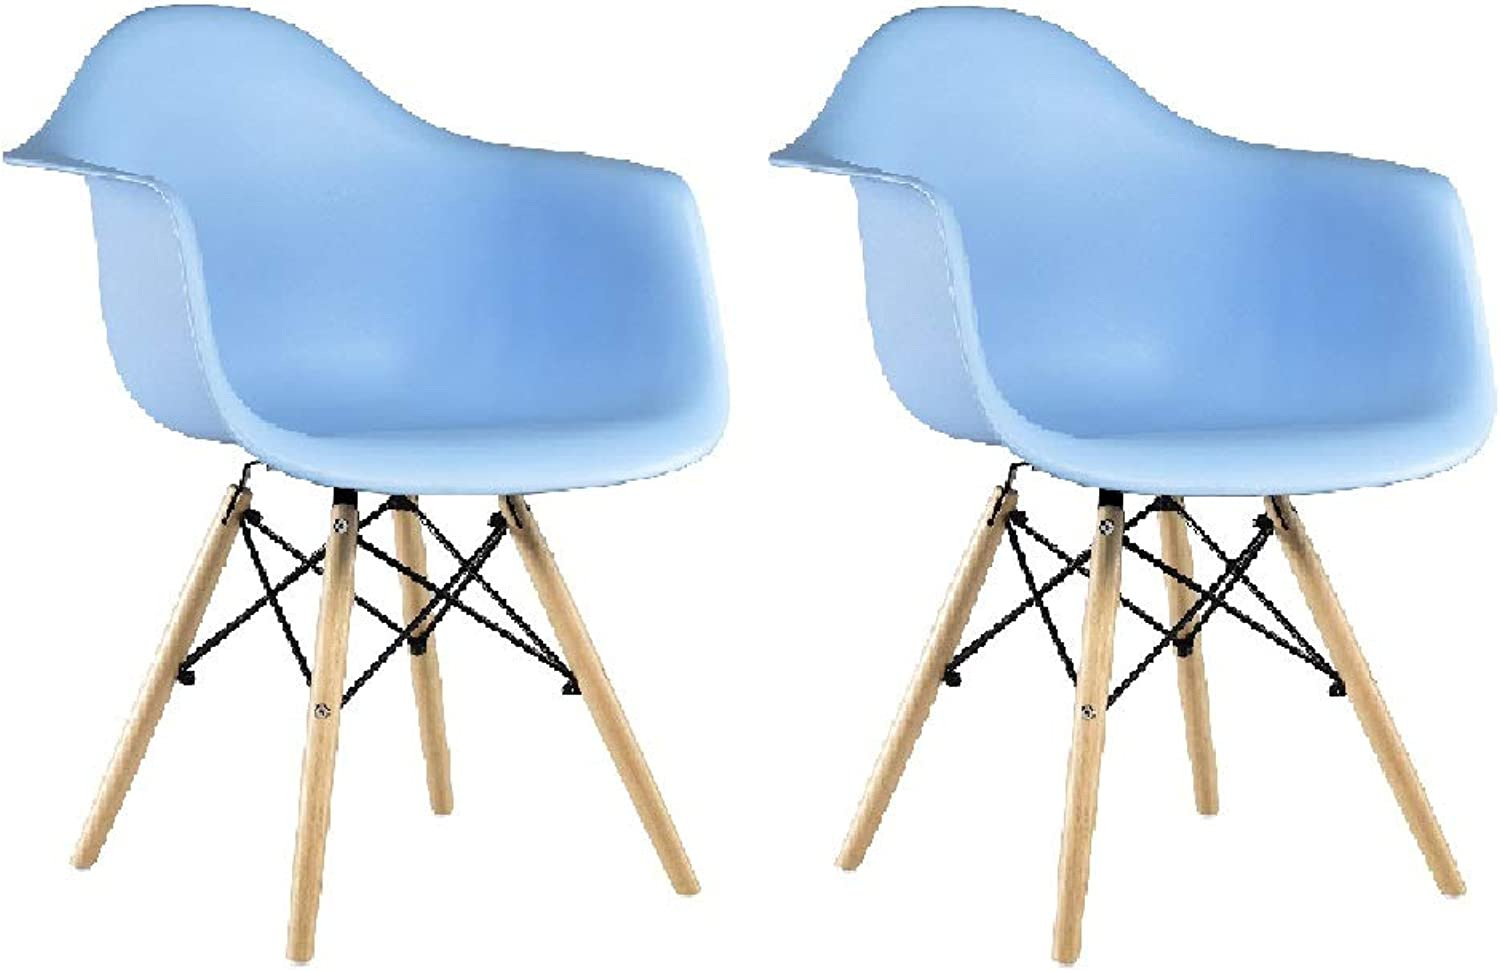 KIMCO Furniture Chair Eames Style DAW (Set of 2) - Beech Wood Legs Eiffel Dining Room Chair - Lounge Chair Arm Chair Arms Chair Seats Wooden Wood Leg Wire Leg Dowel Leg (bluee)